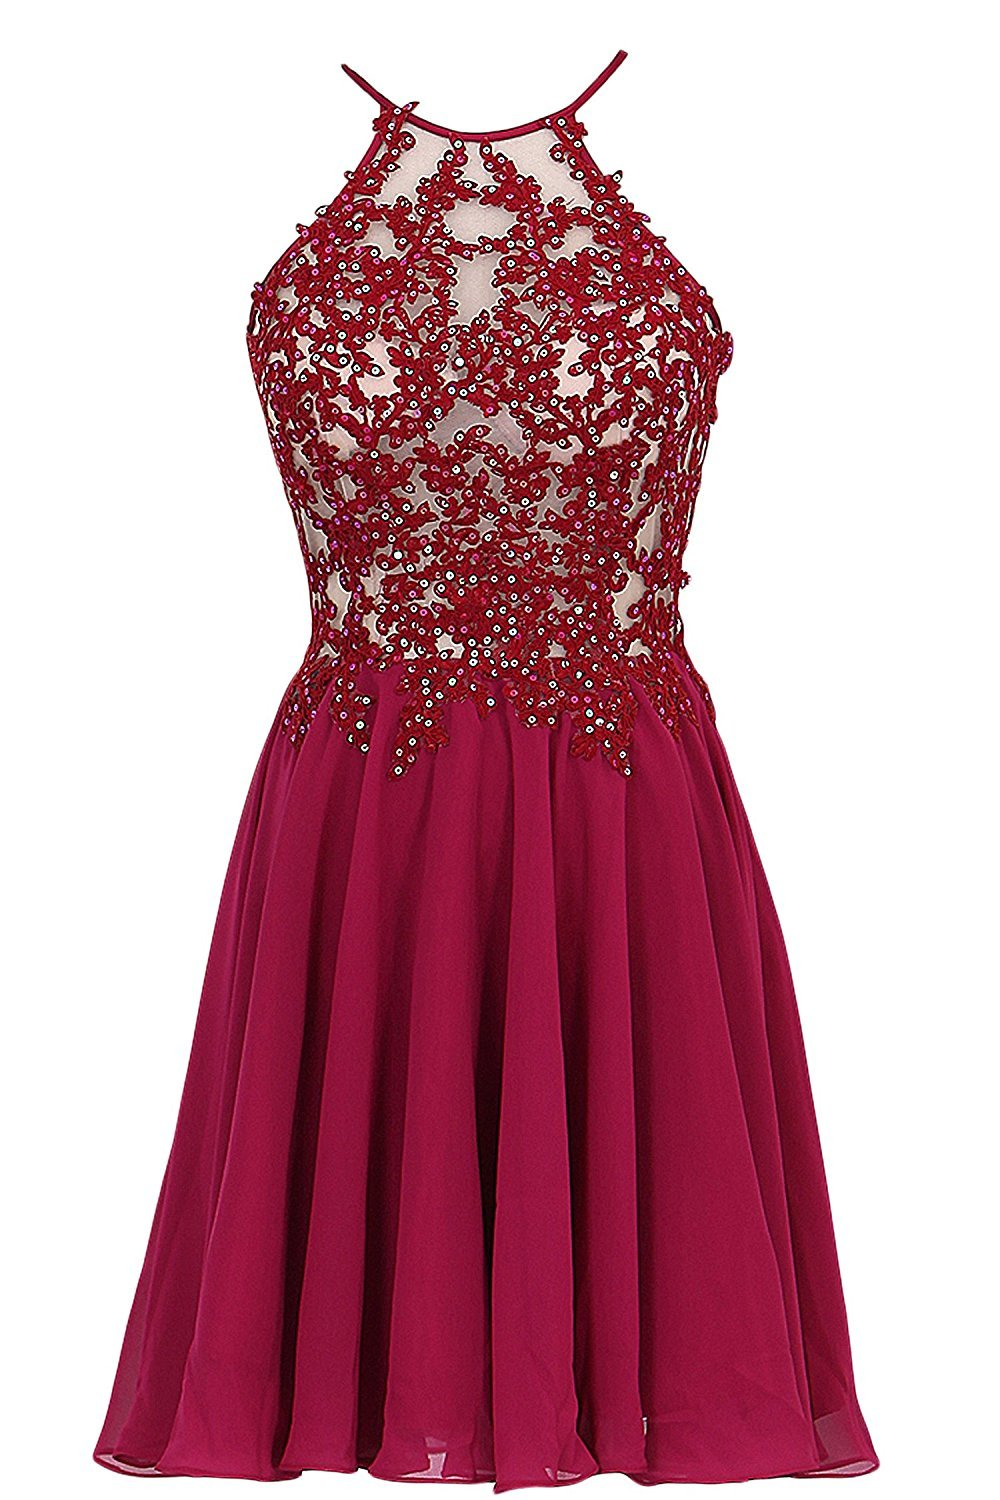 Primary image for Spaghetti Straps Chiffon Prom Dress Short Applique with Beading Homecoming Dress